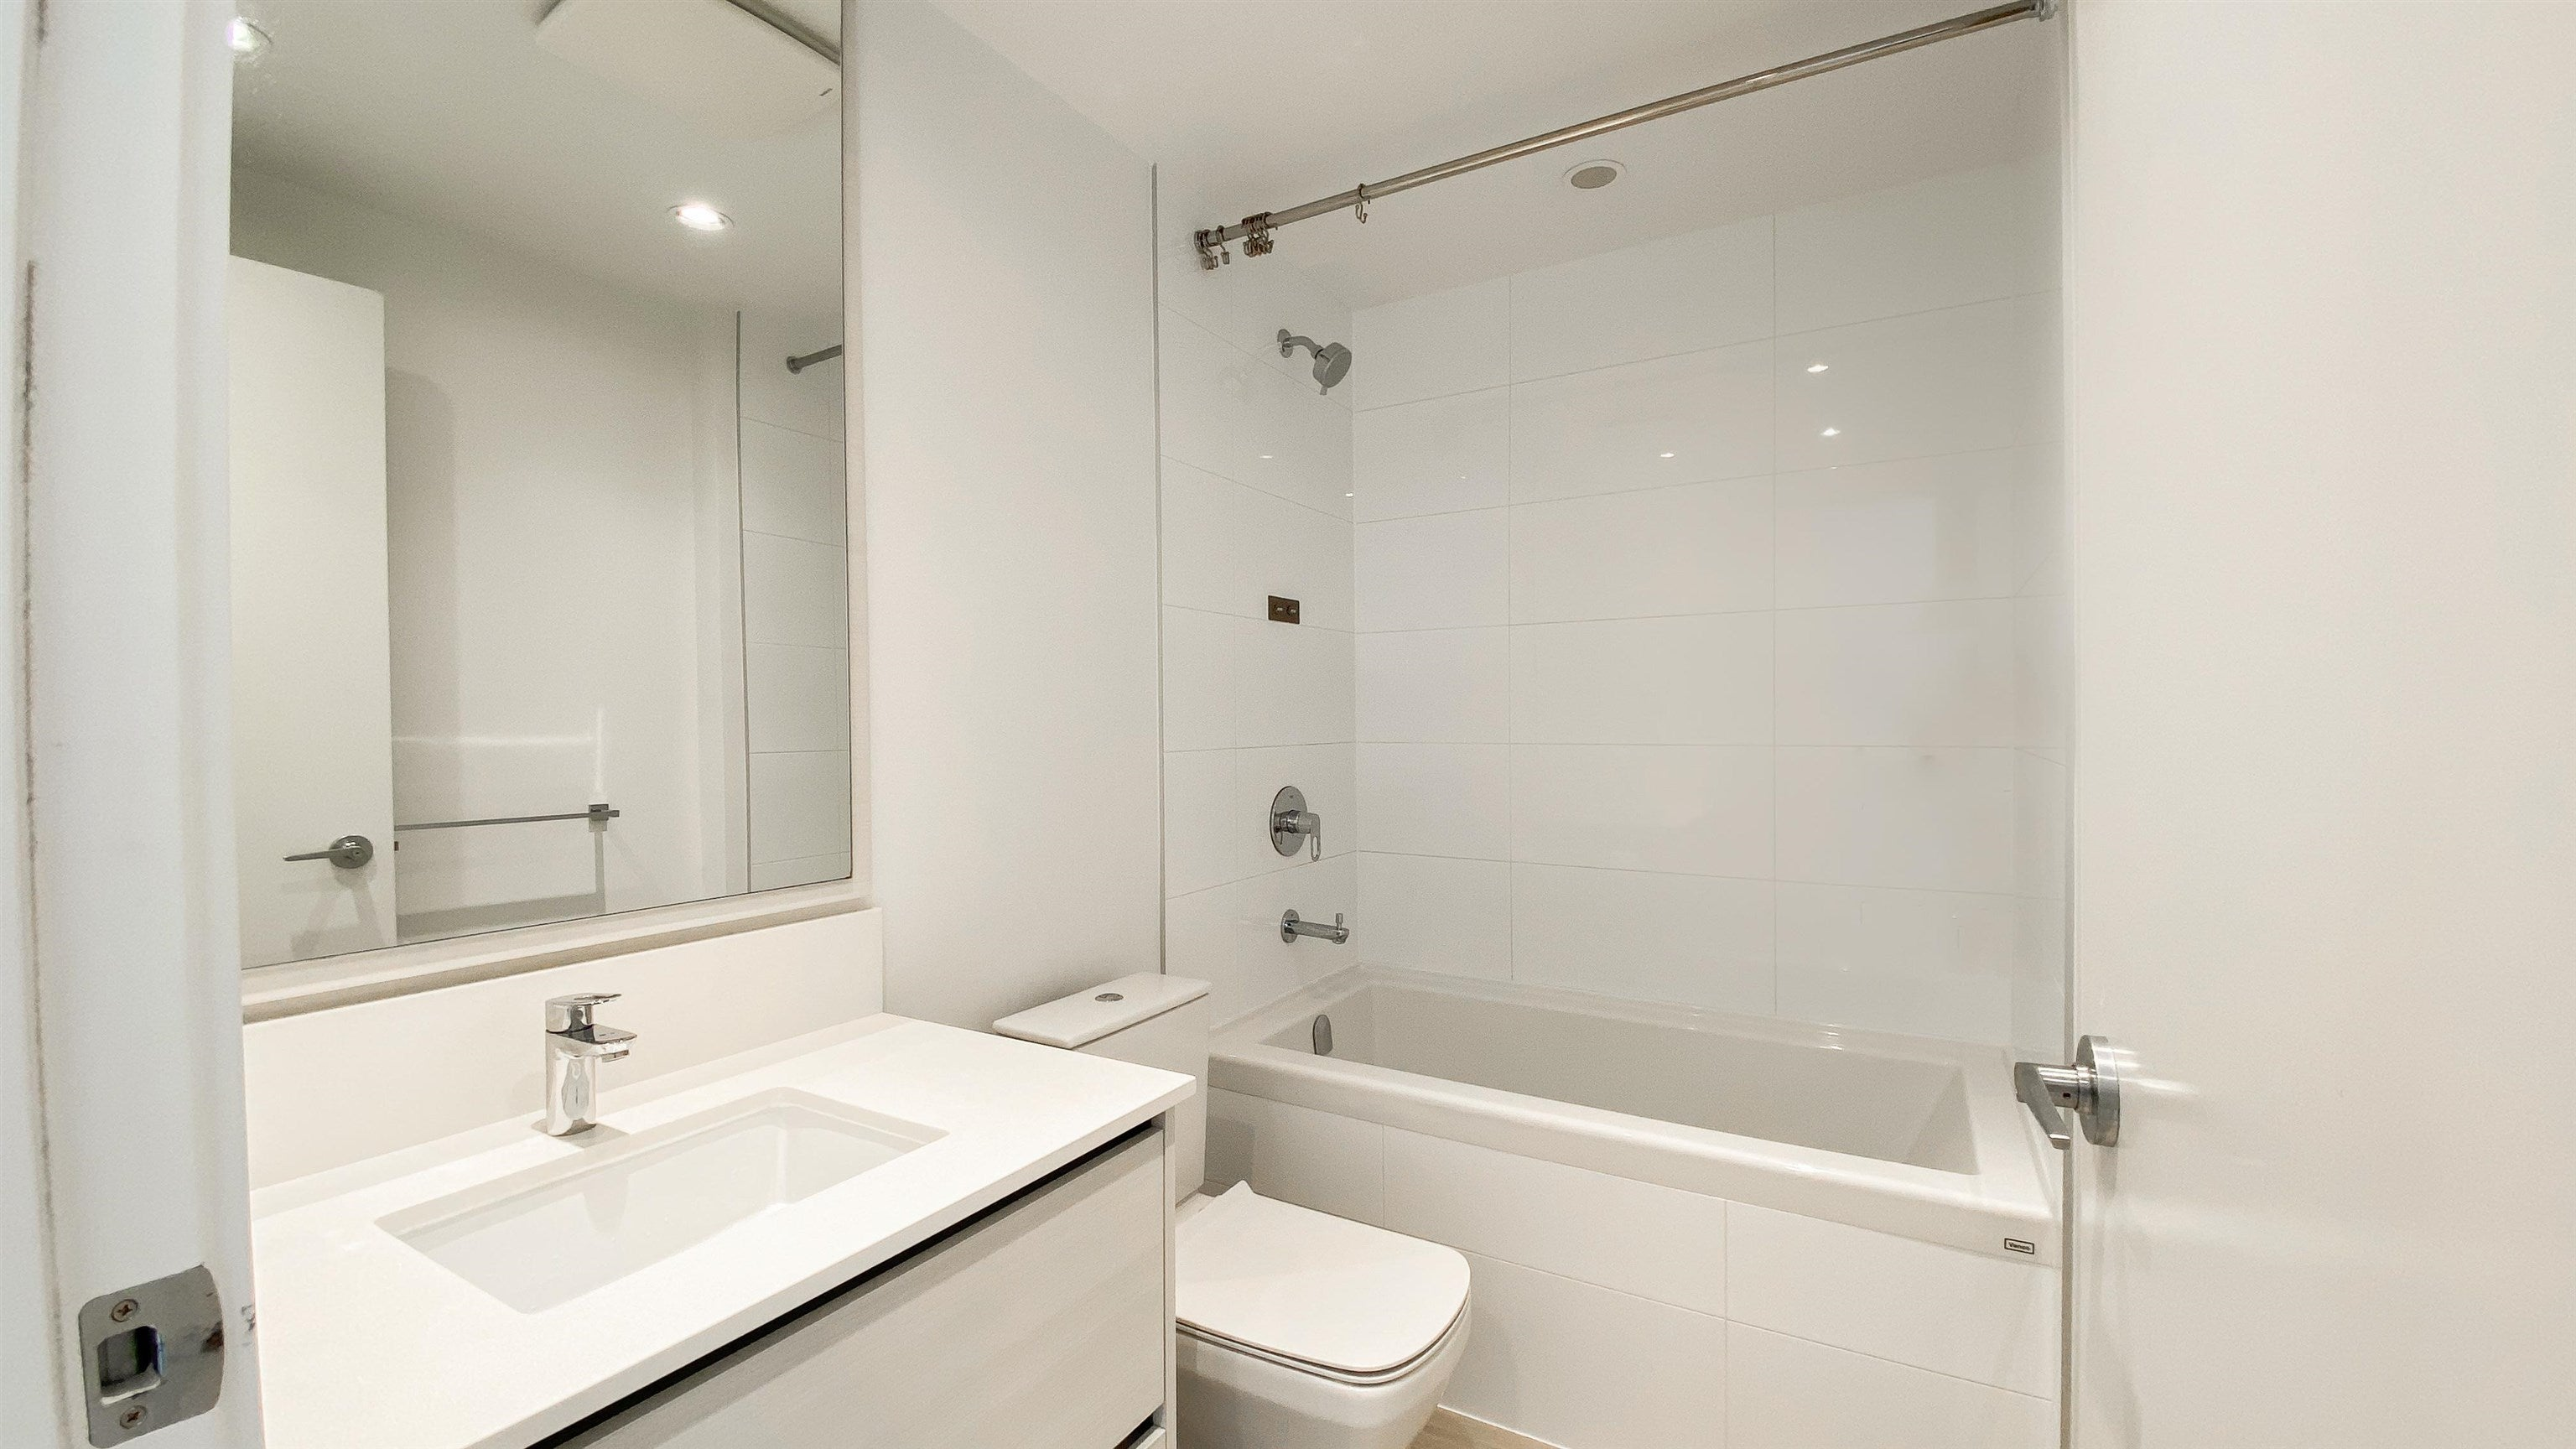 2510 4670 ASSEMBLY WAY - Metrotown Apartment/Condo for sale, 2 Bedrooms (R2625732) - #24